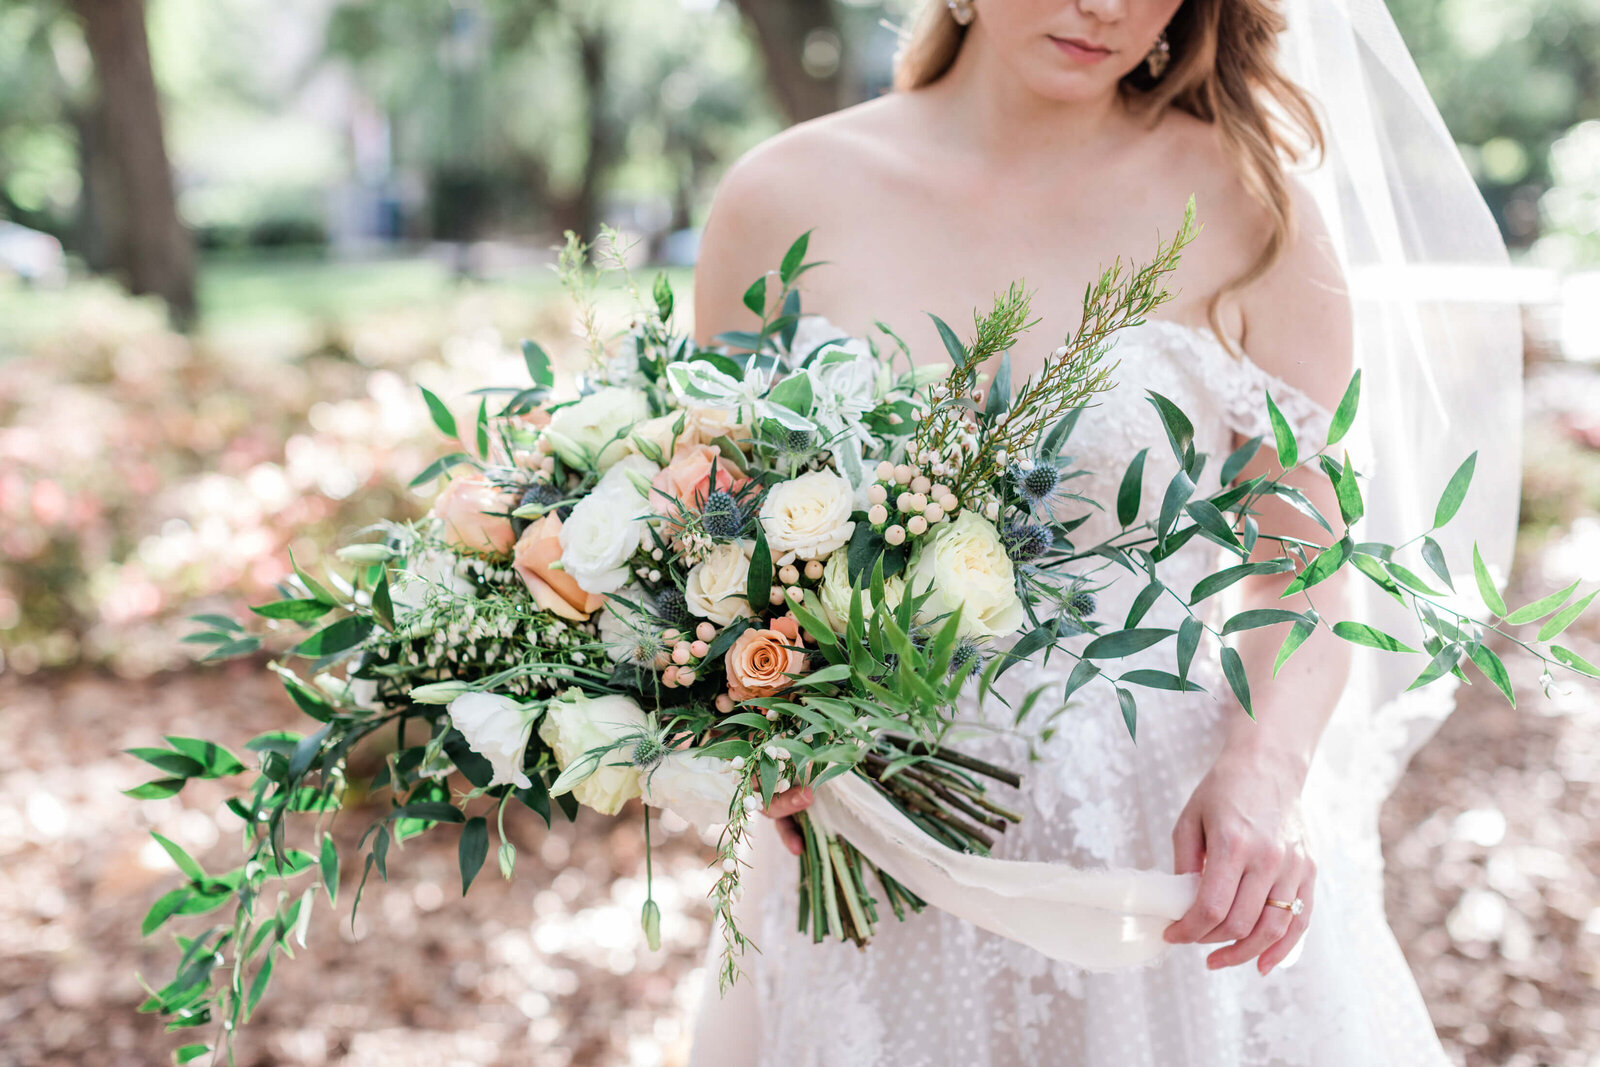 Flowers by Ivory and Beau - Savannah Elopement Package